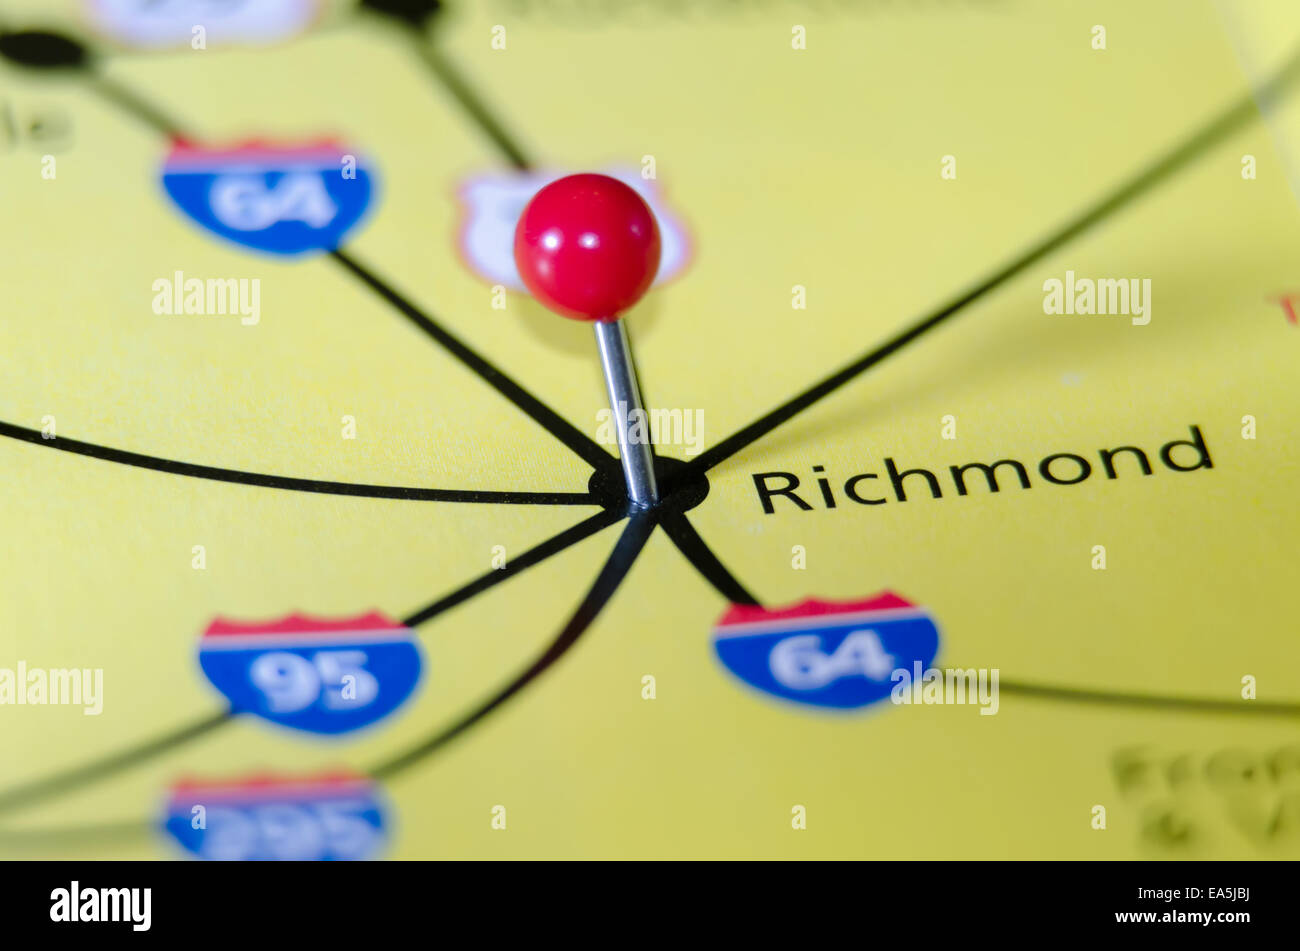 richmond virginia pin othe map Stock Photo: 75112230 - Alamy